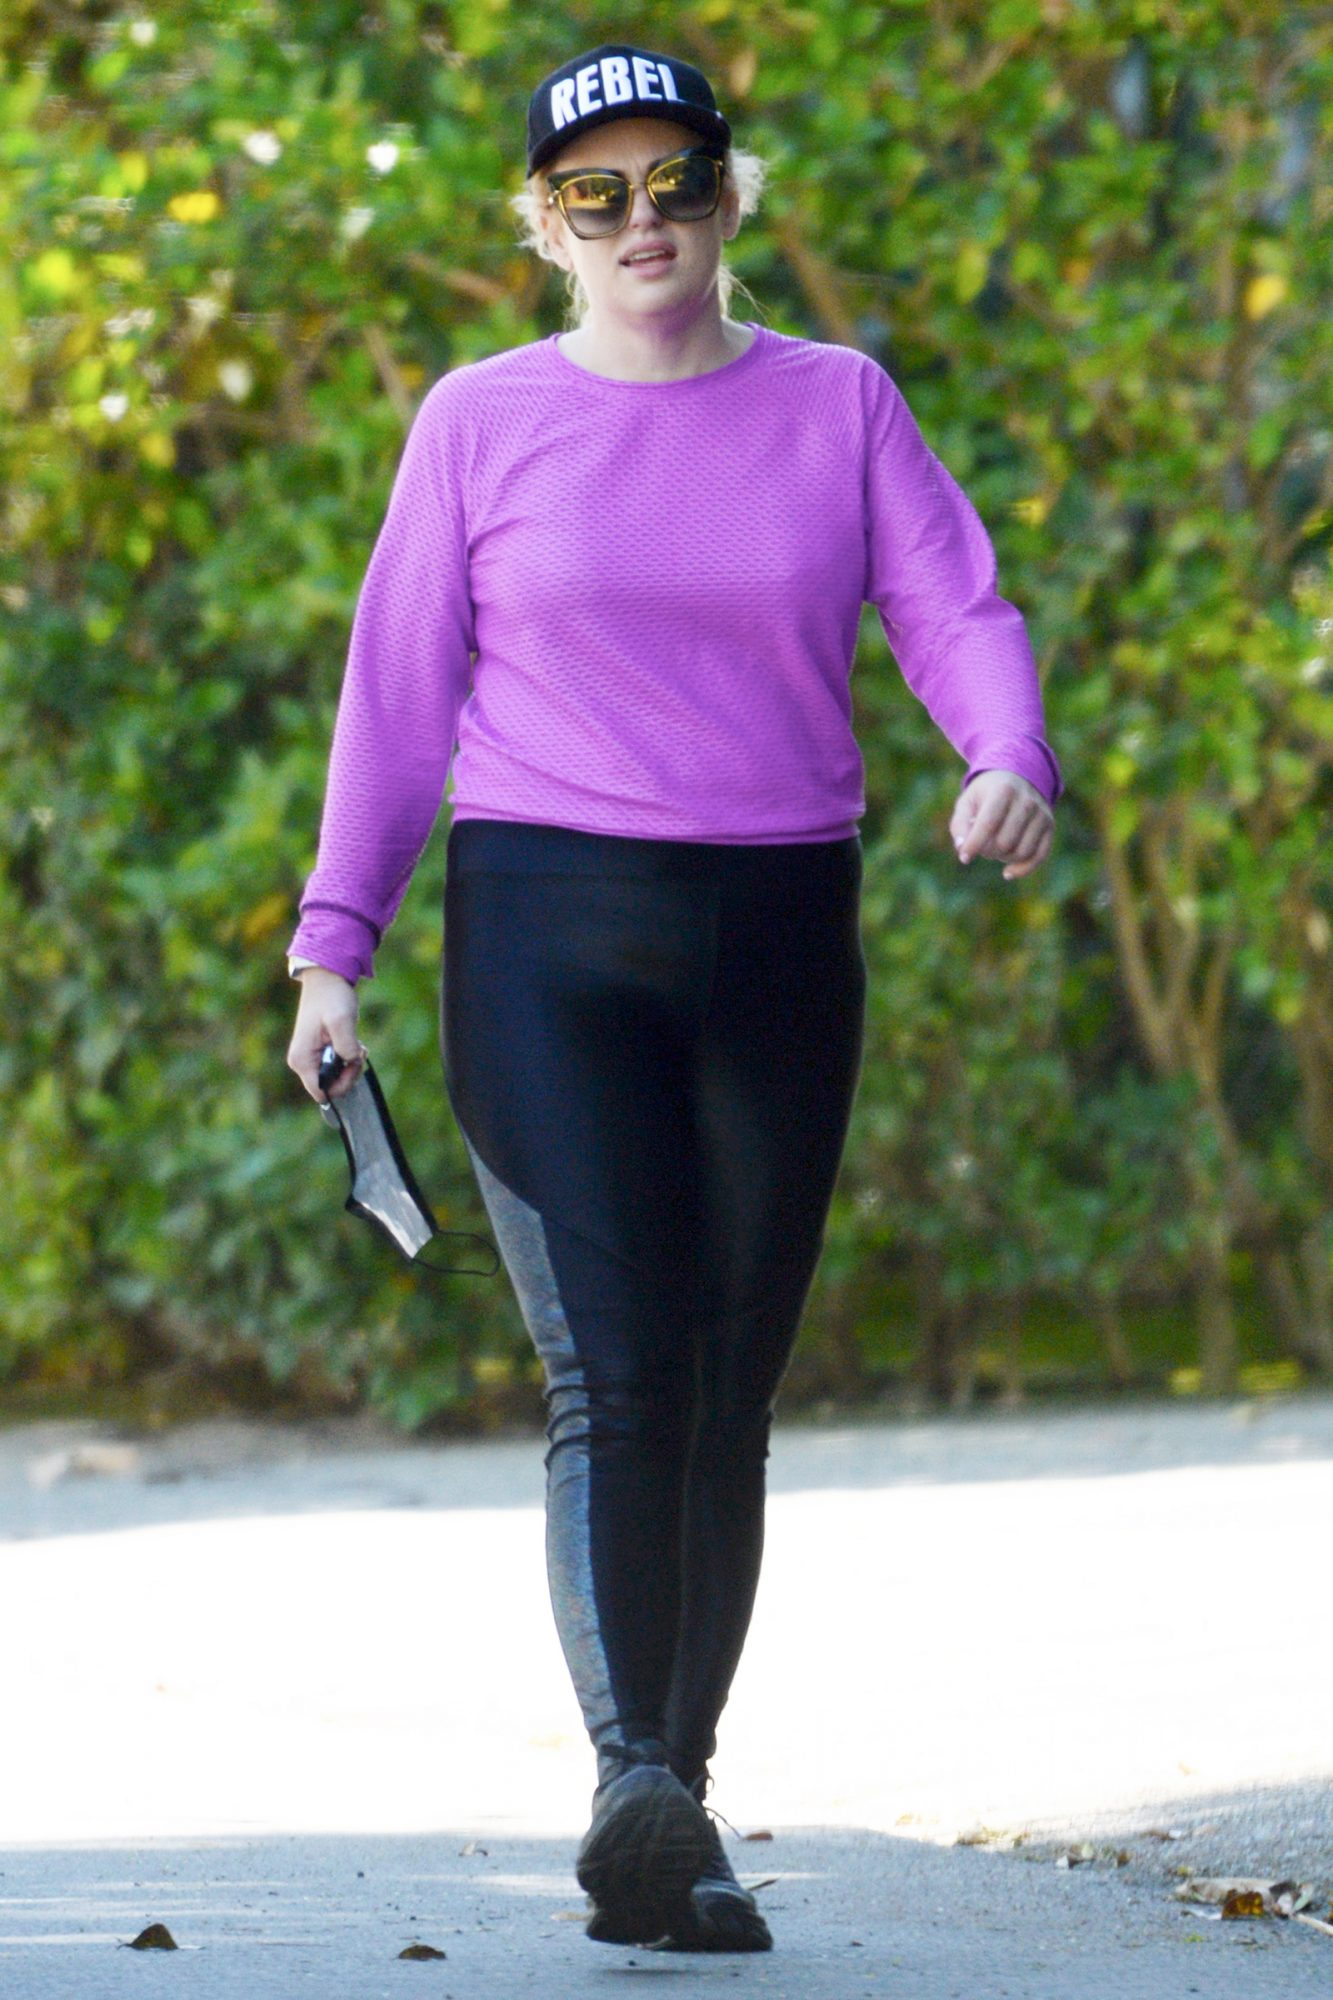 Rebel Wilson Stretches Out Before a Hike as She Celebrates Her 41st Birthday in Los Angeles.